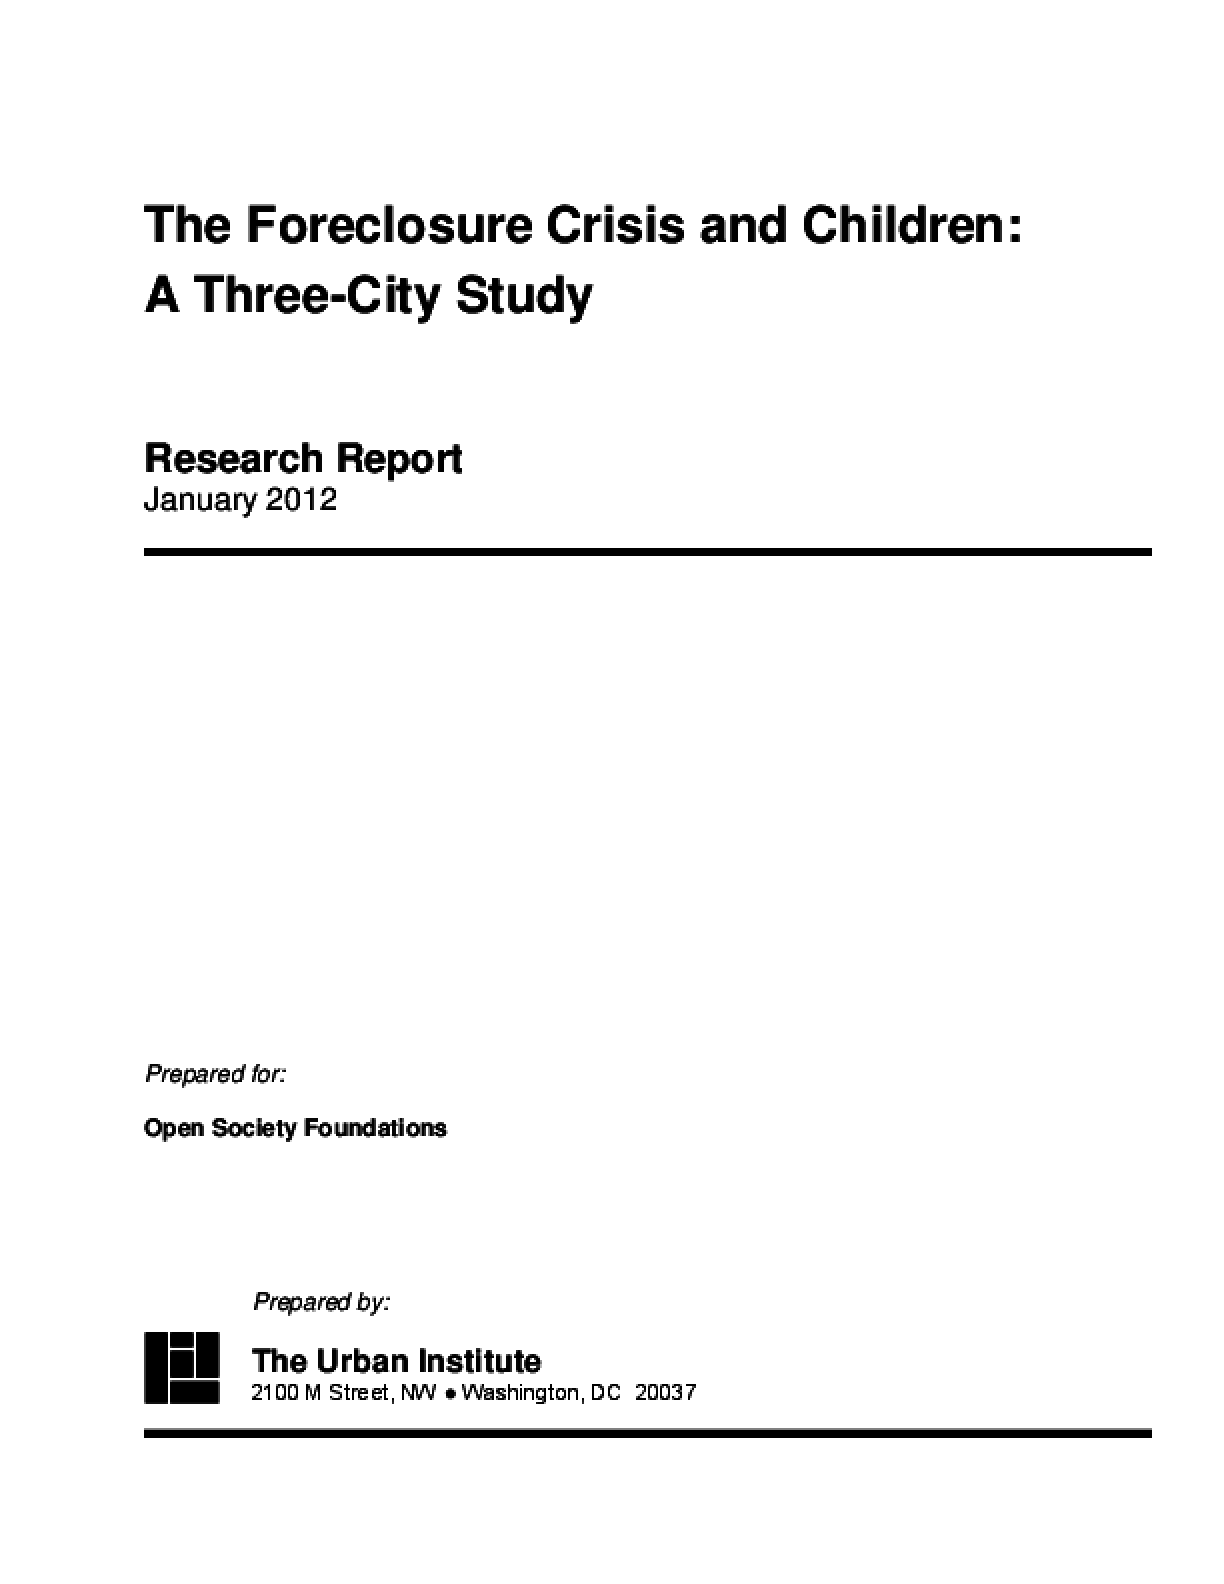 The Foreclosure Crisis and Children: A Three-City Study